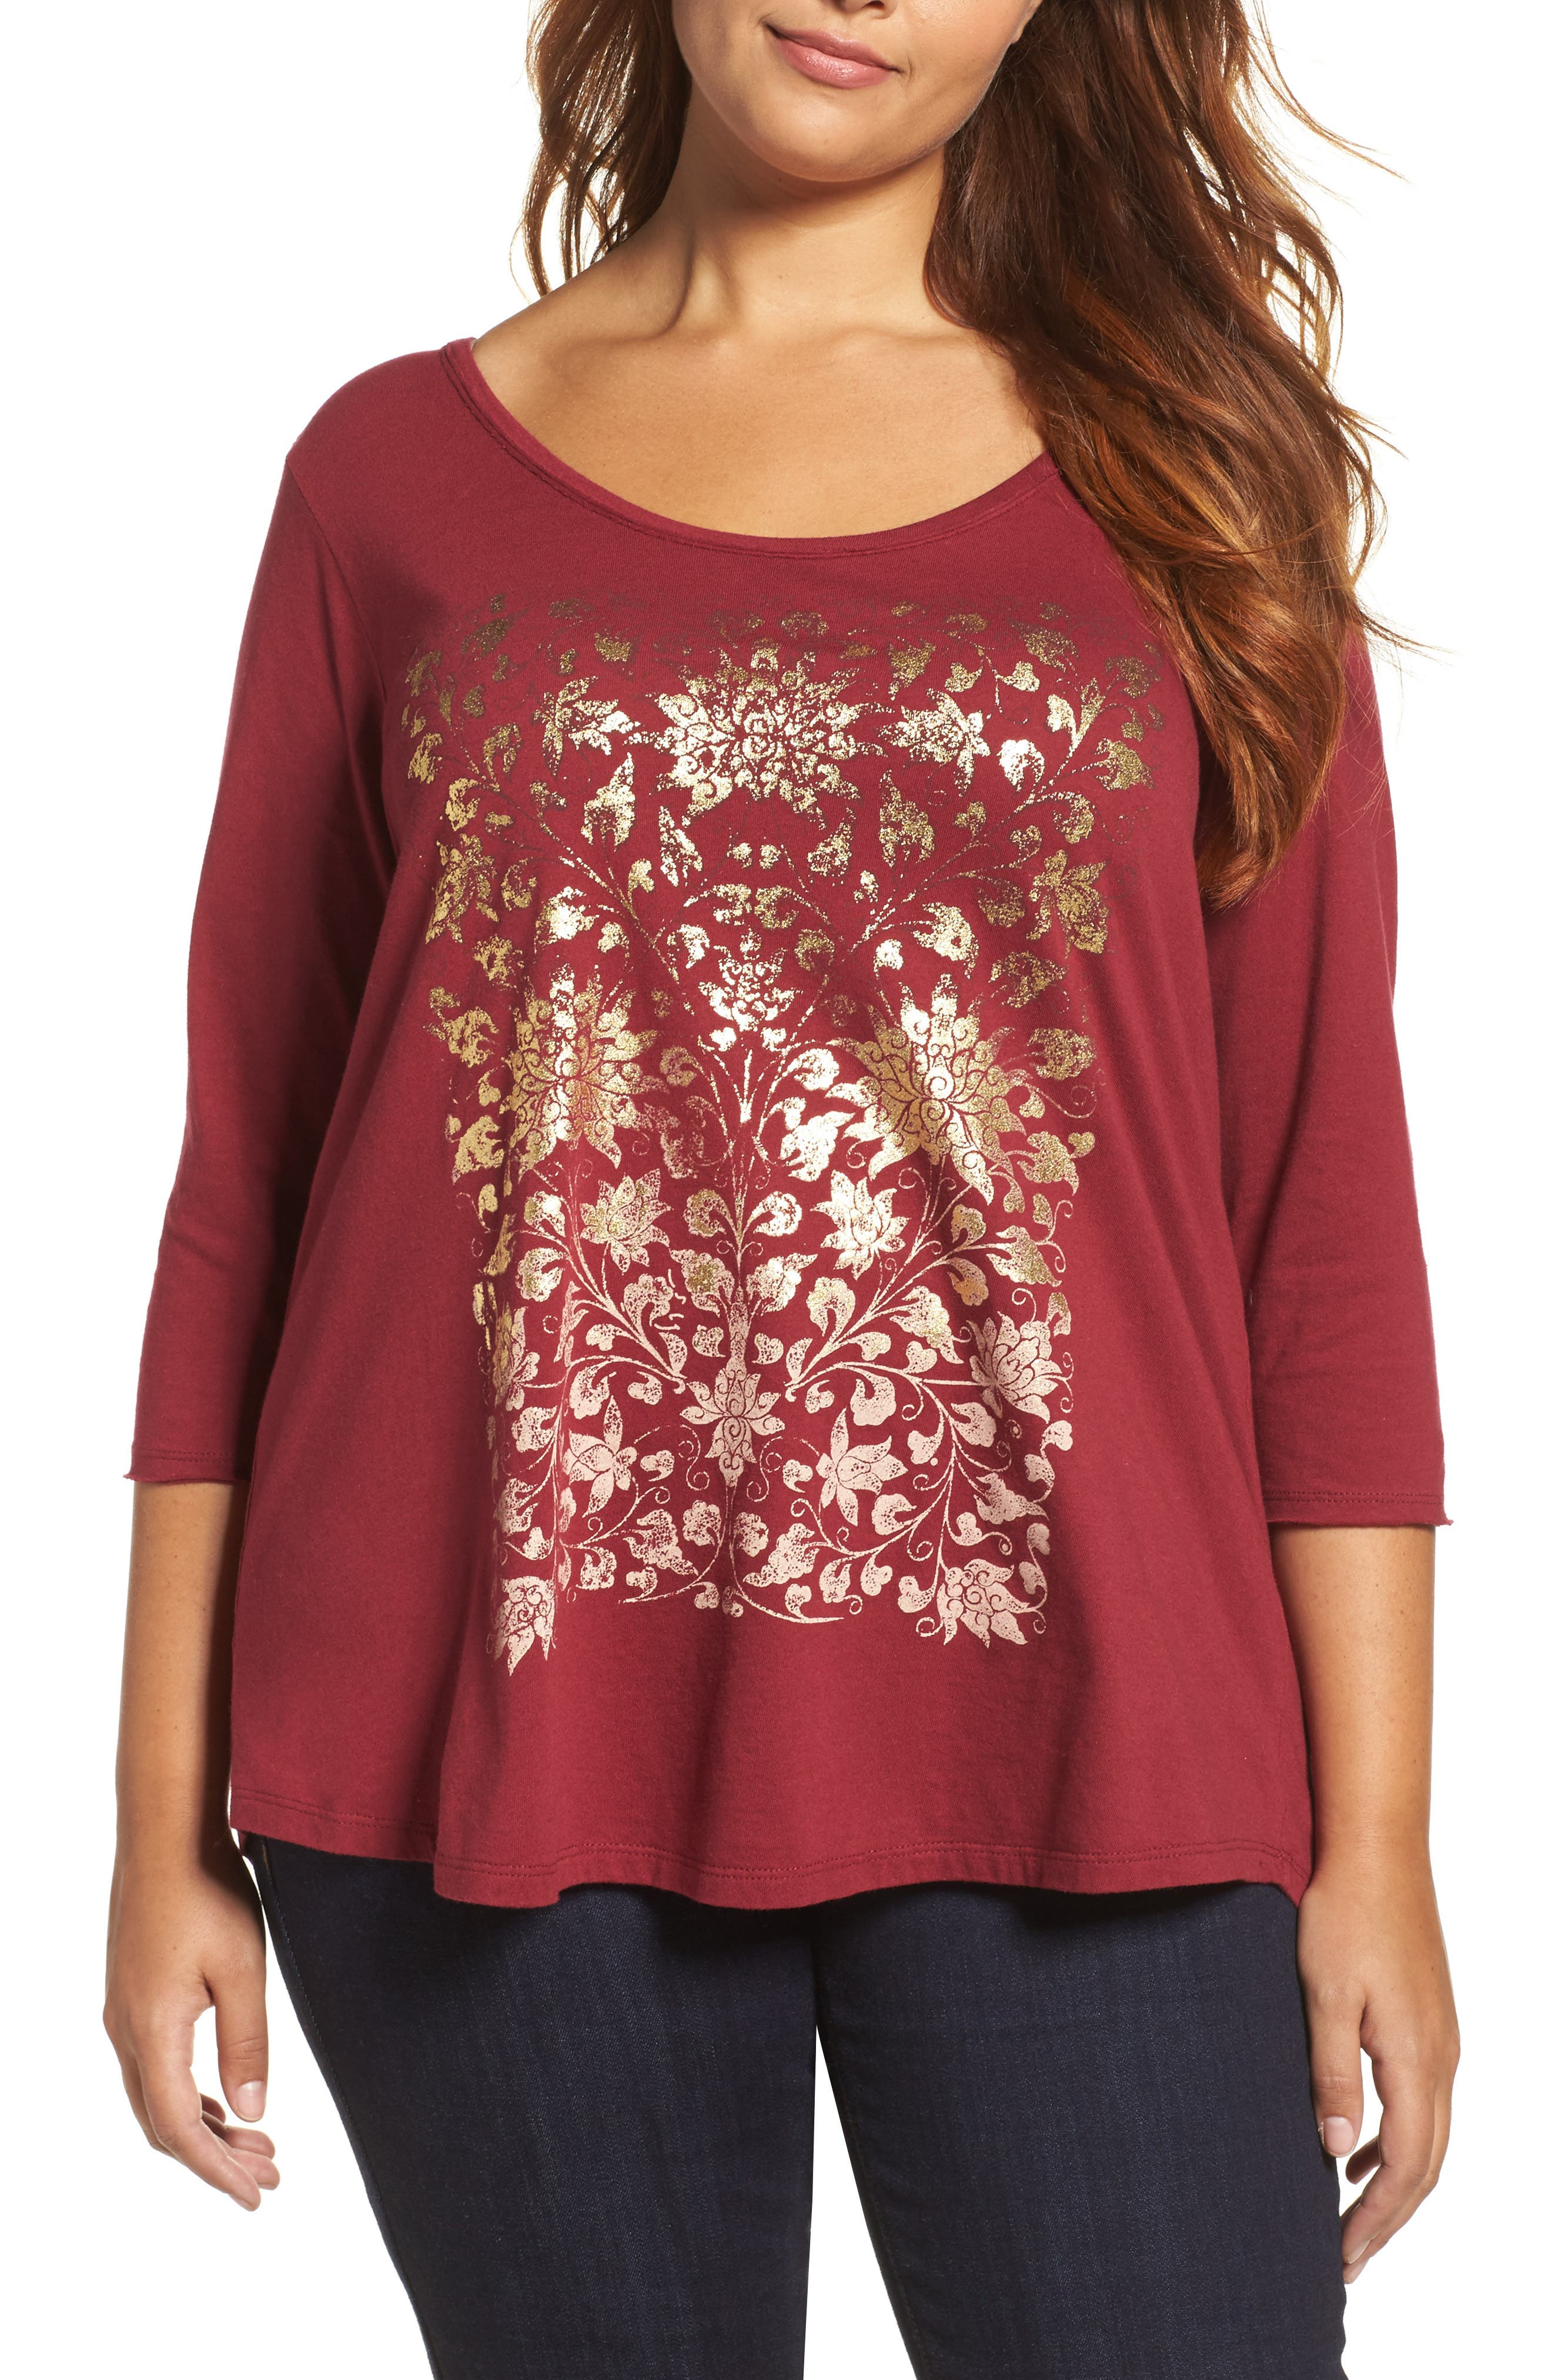 Main Image - Lucky Brand Floral Foil Print Tee (Plus Size)